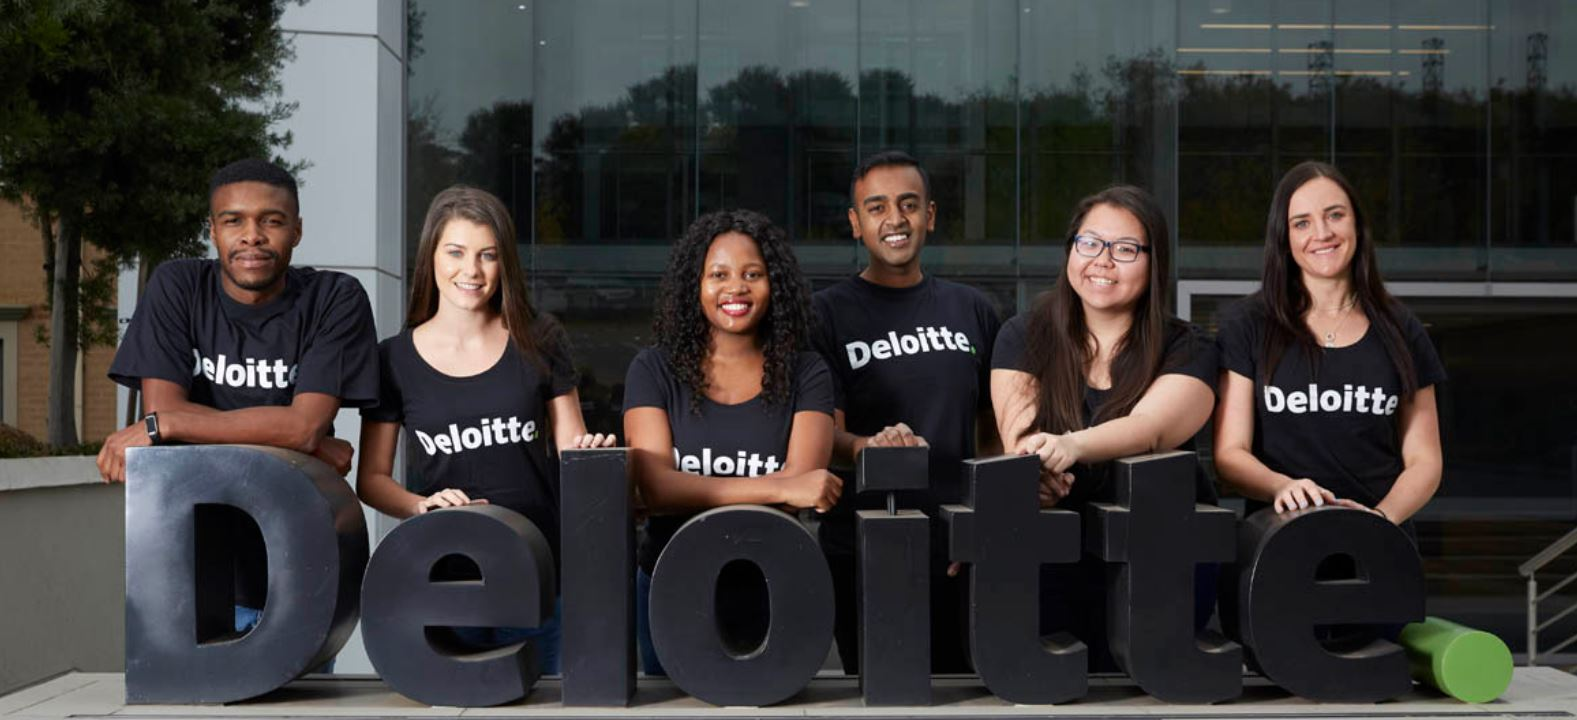 Working at Deloitte Kenya as an Audit consultant, Job Requirements, How to apply